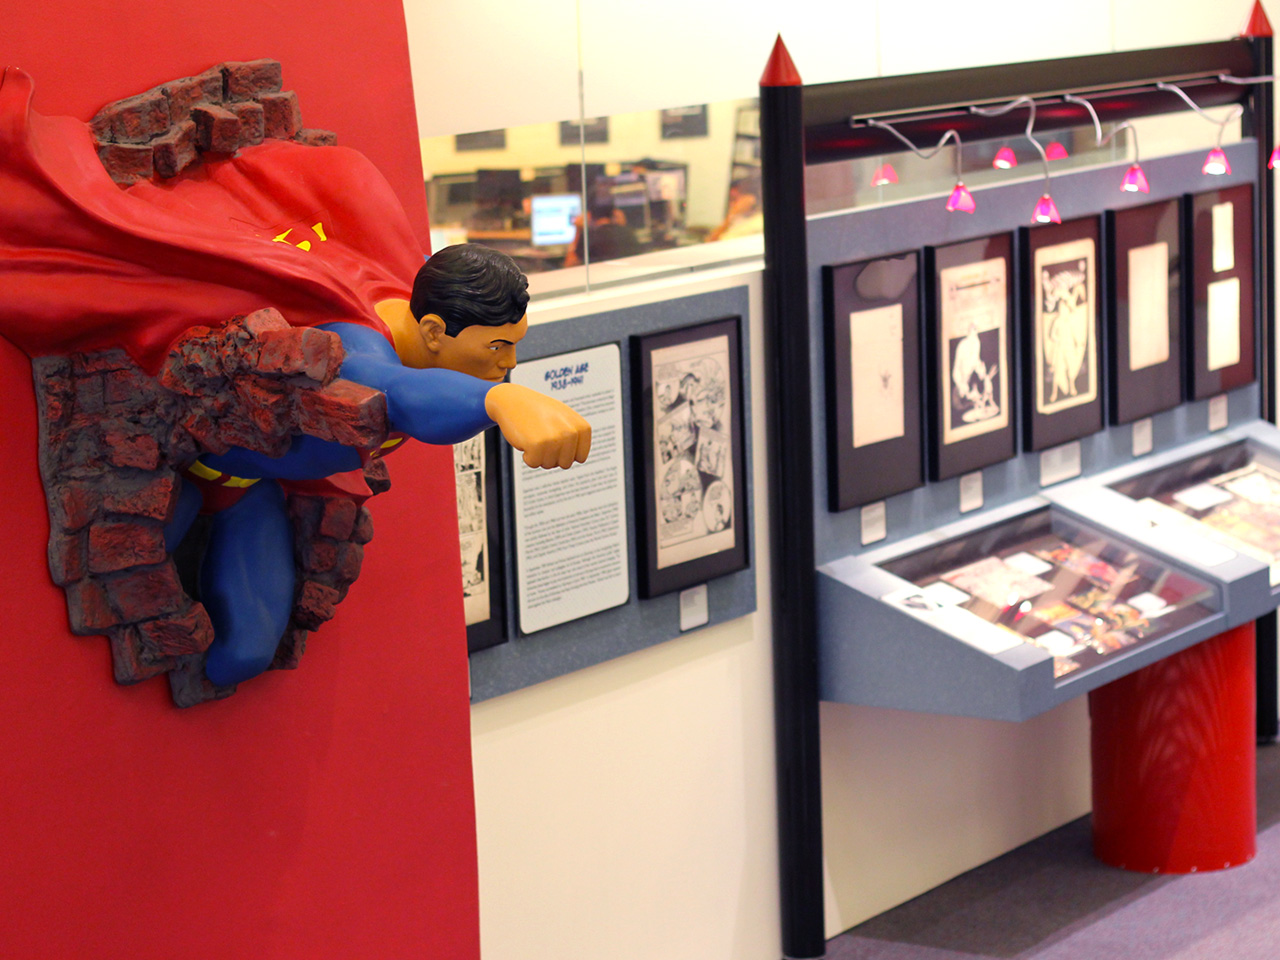 zap pow bam exhibition with superman wall sculpture